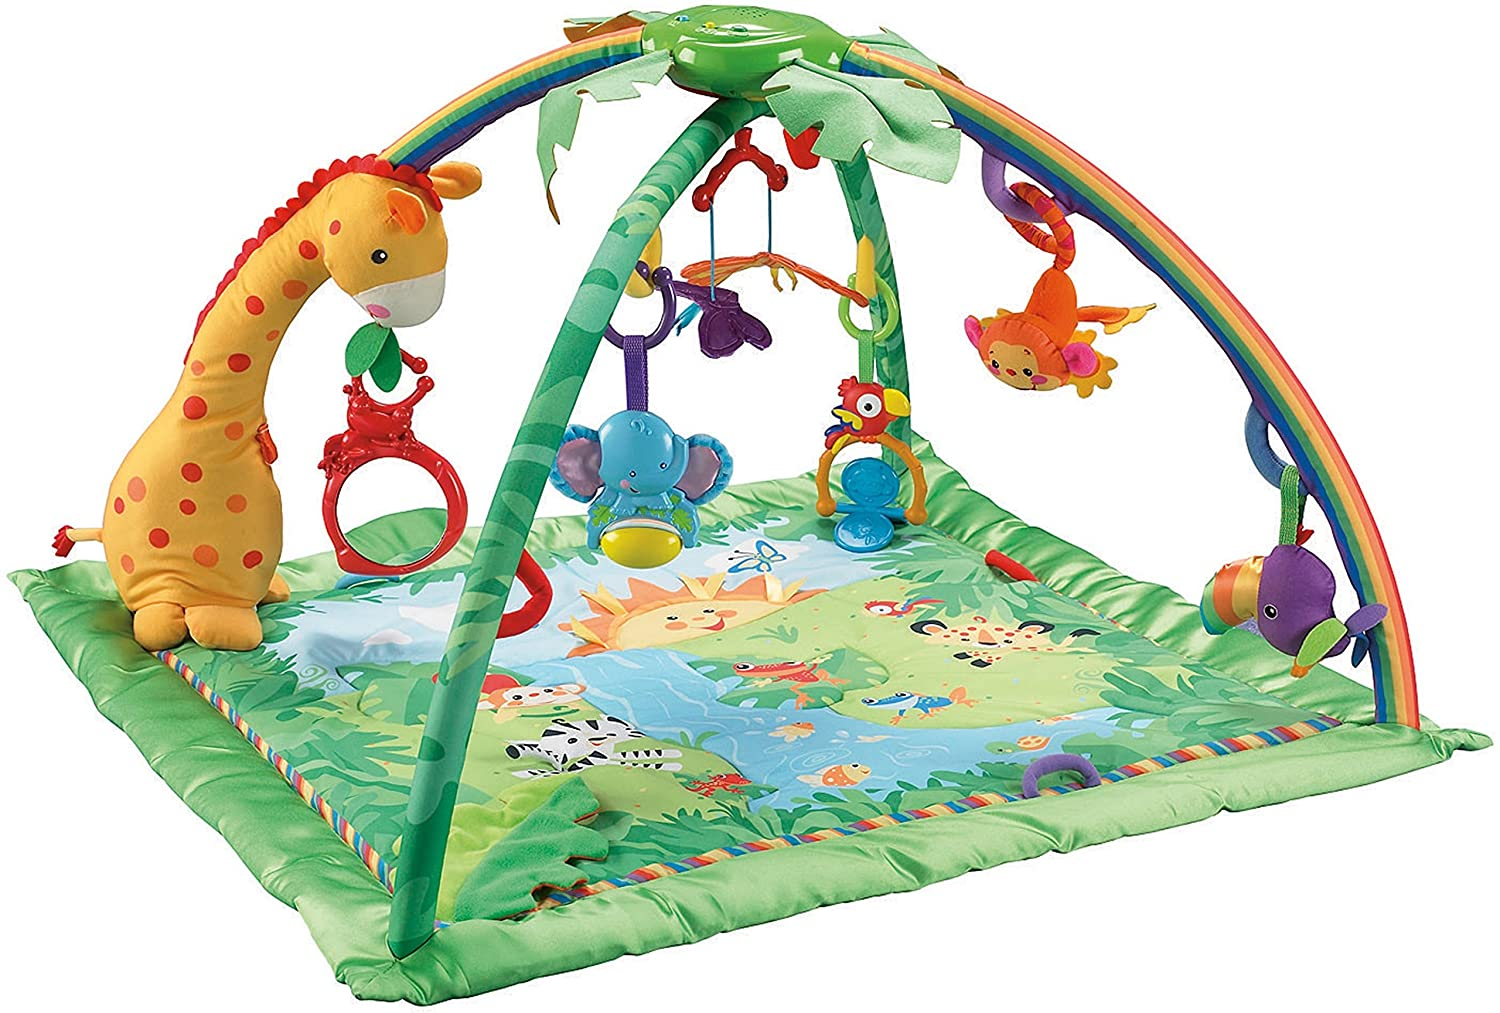 Fisher-Price Rainforest Melodies and Lights Deluxe Gym K4562